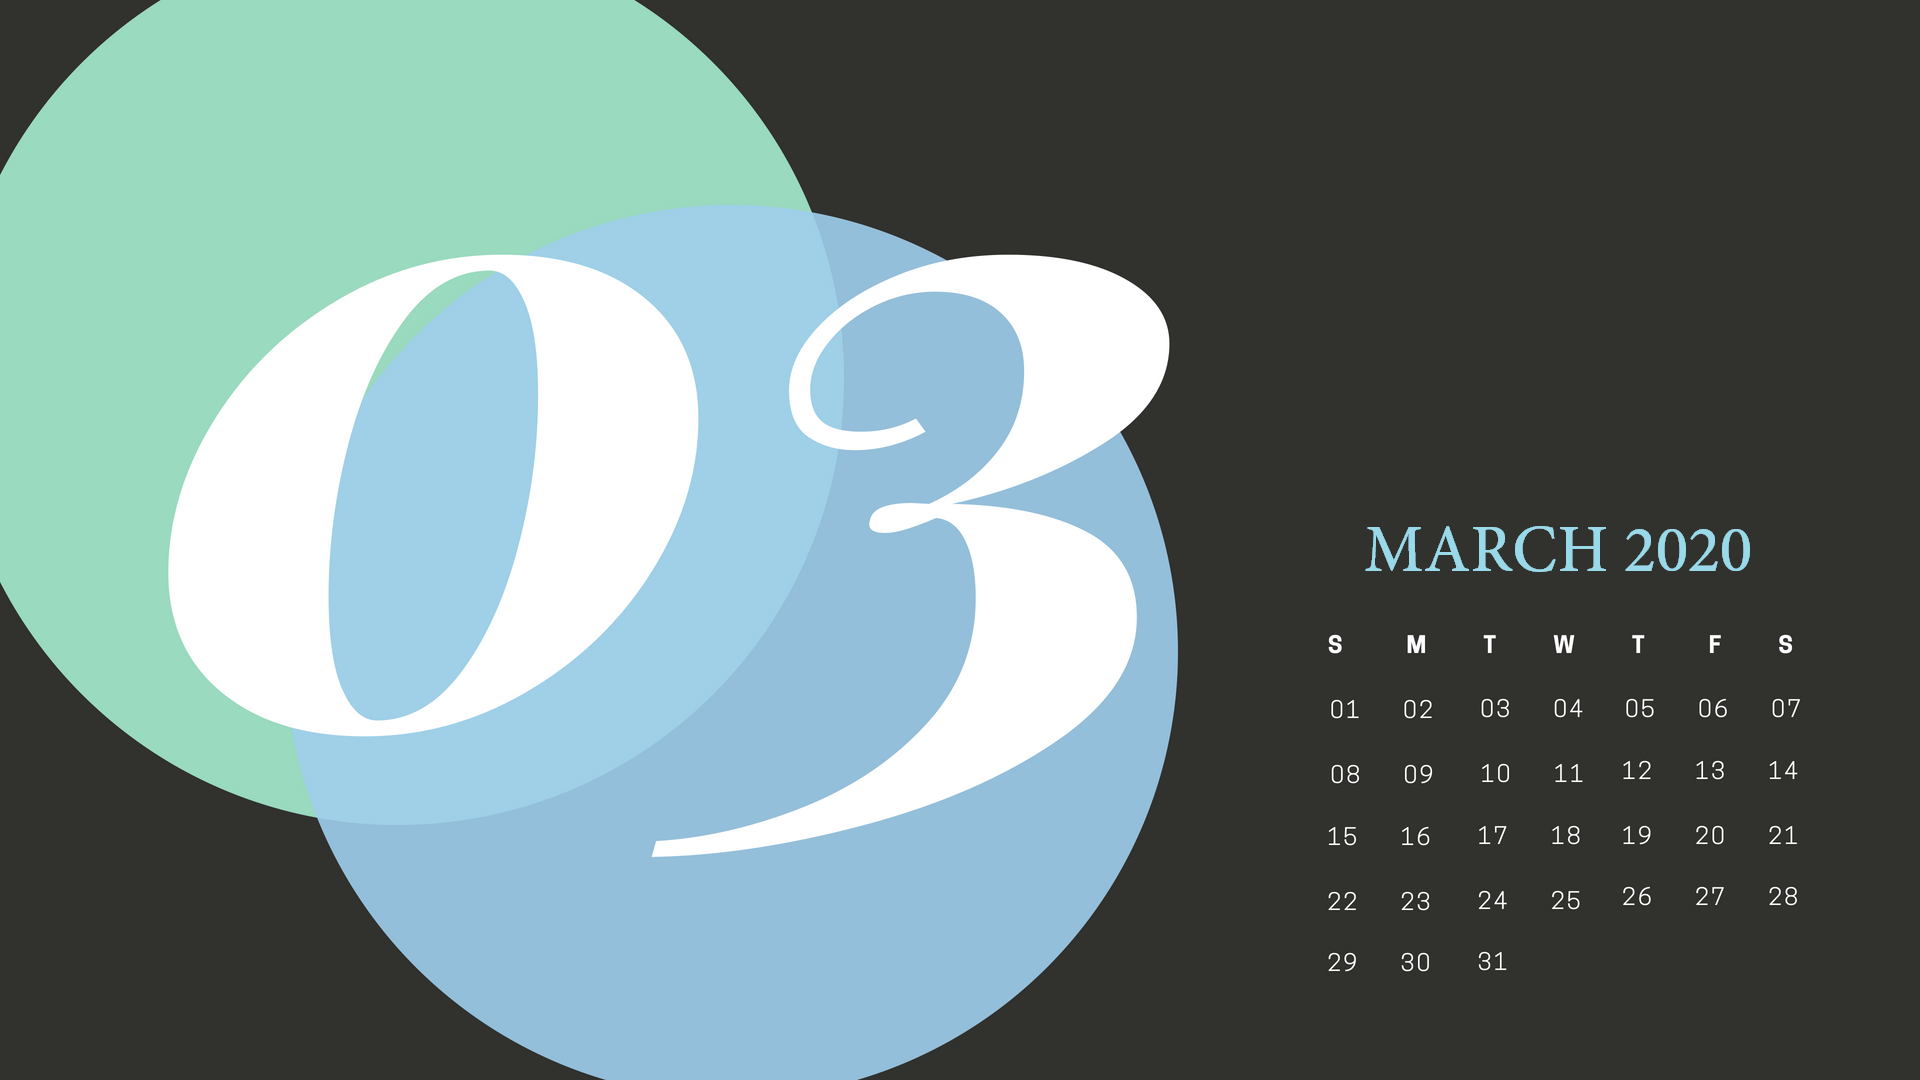 Cute March 2020 Calendar Wallpaper